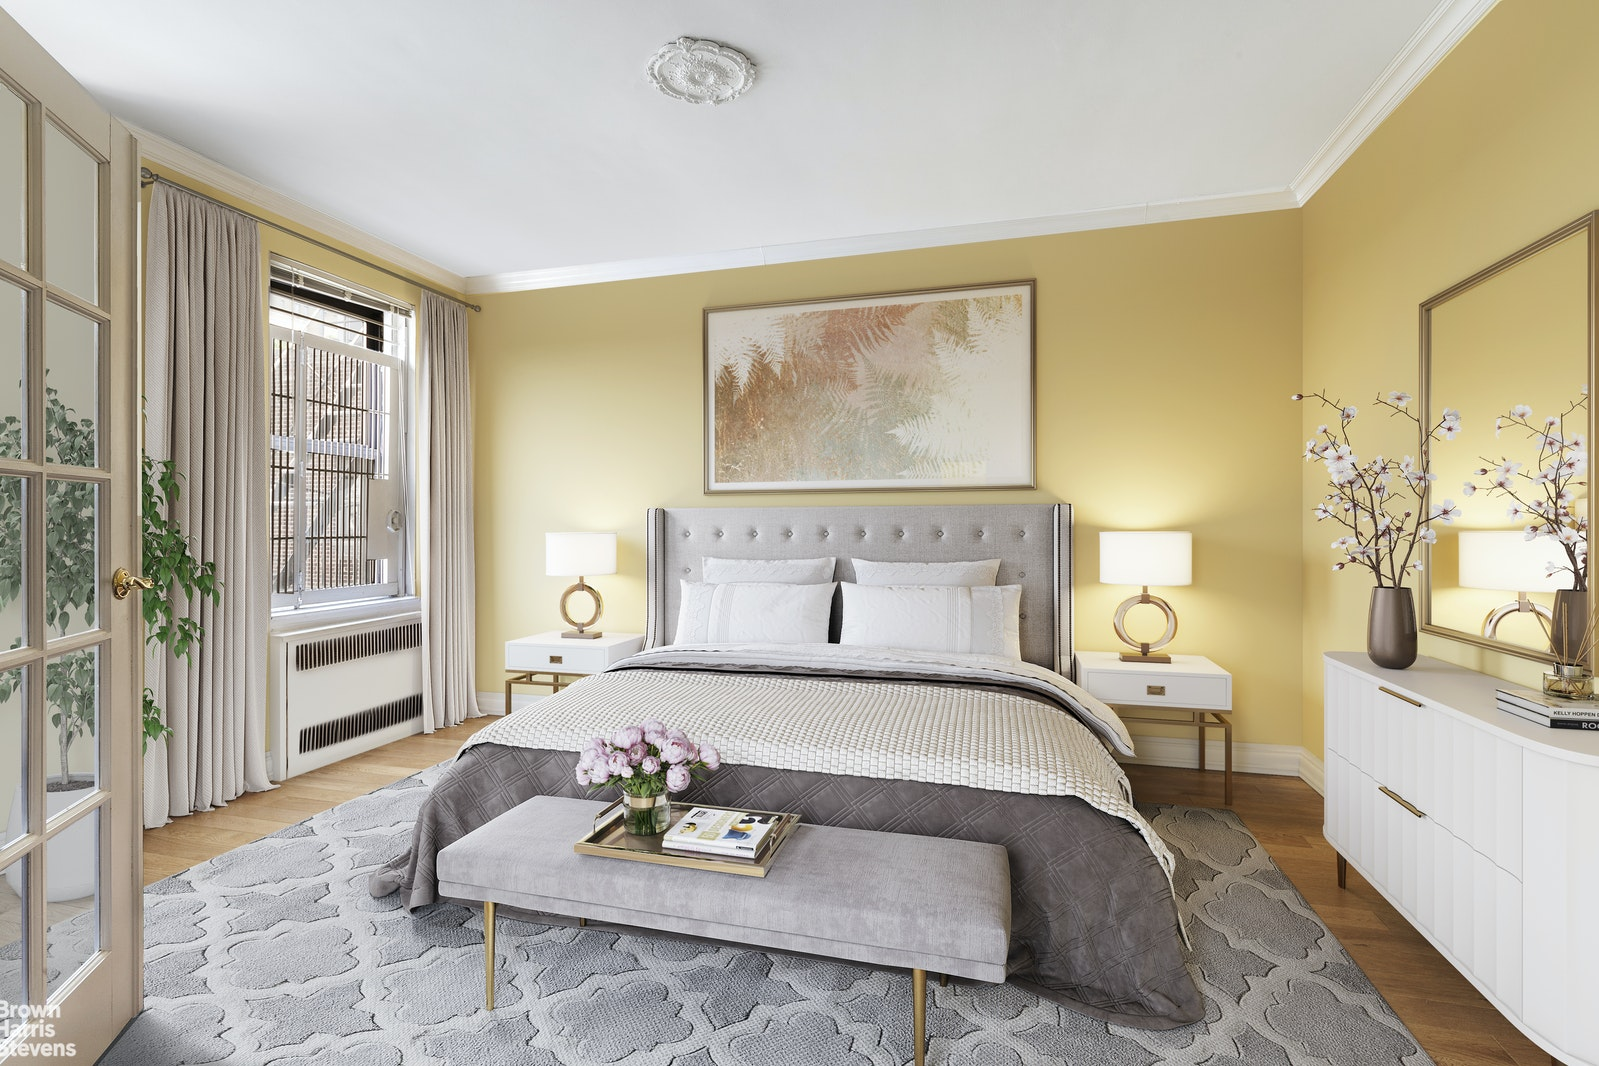 357 WEST 55TH STREET 5/6A, Midtown West, $1,195,000, Web #: 20246615